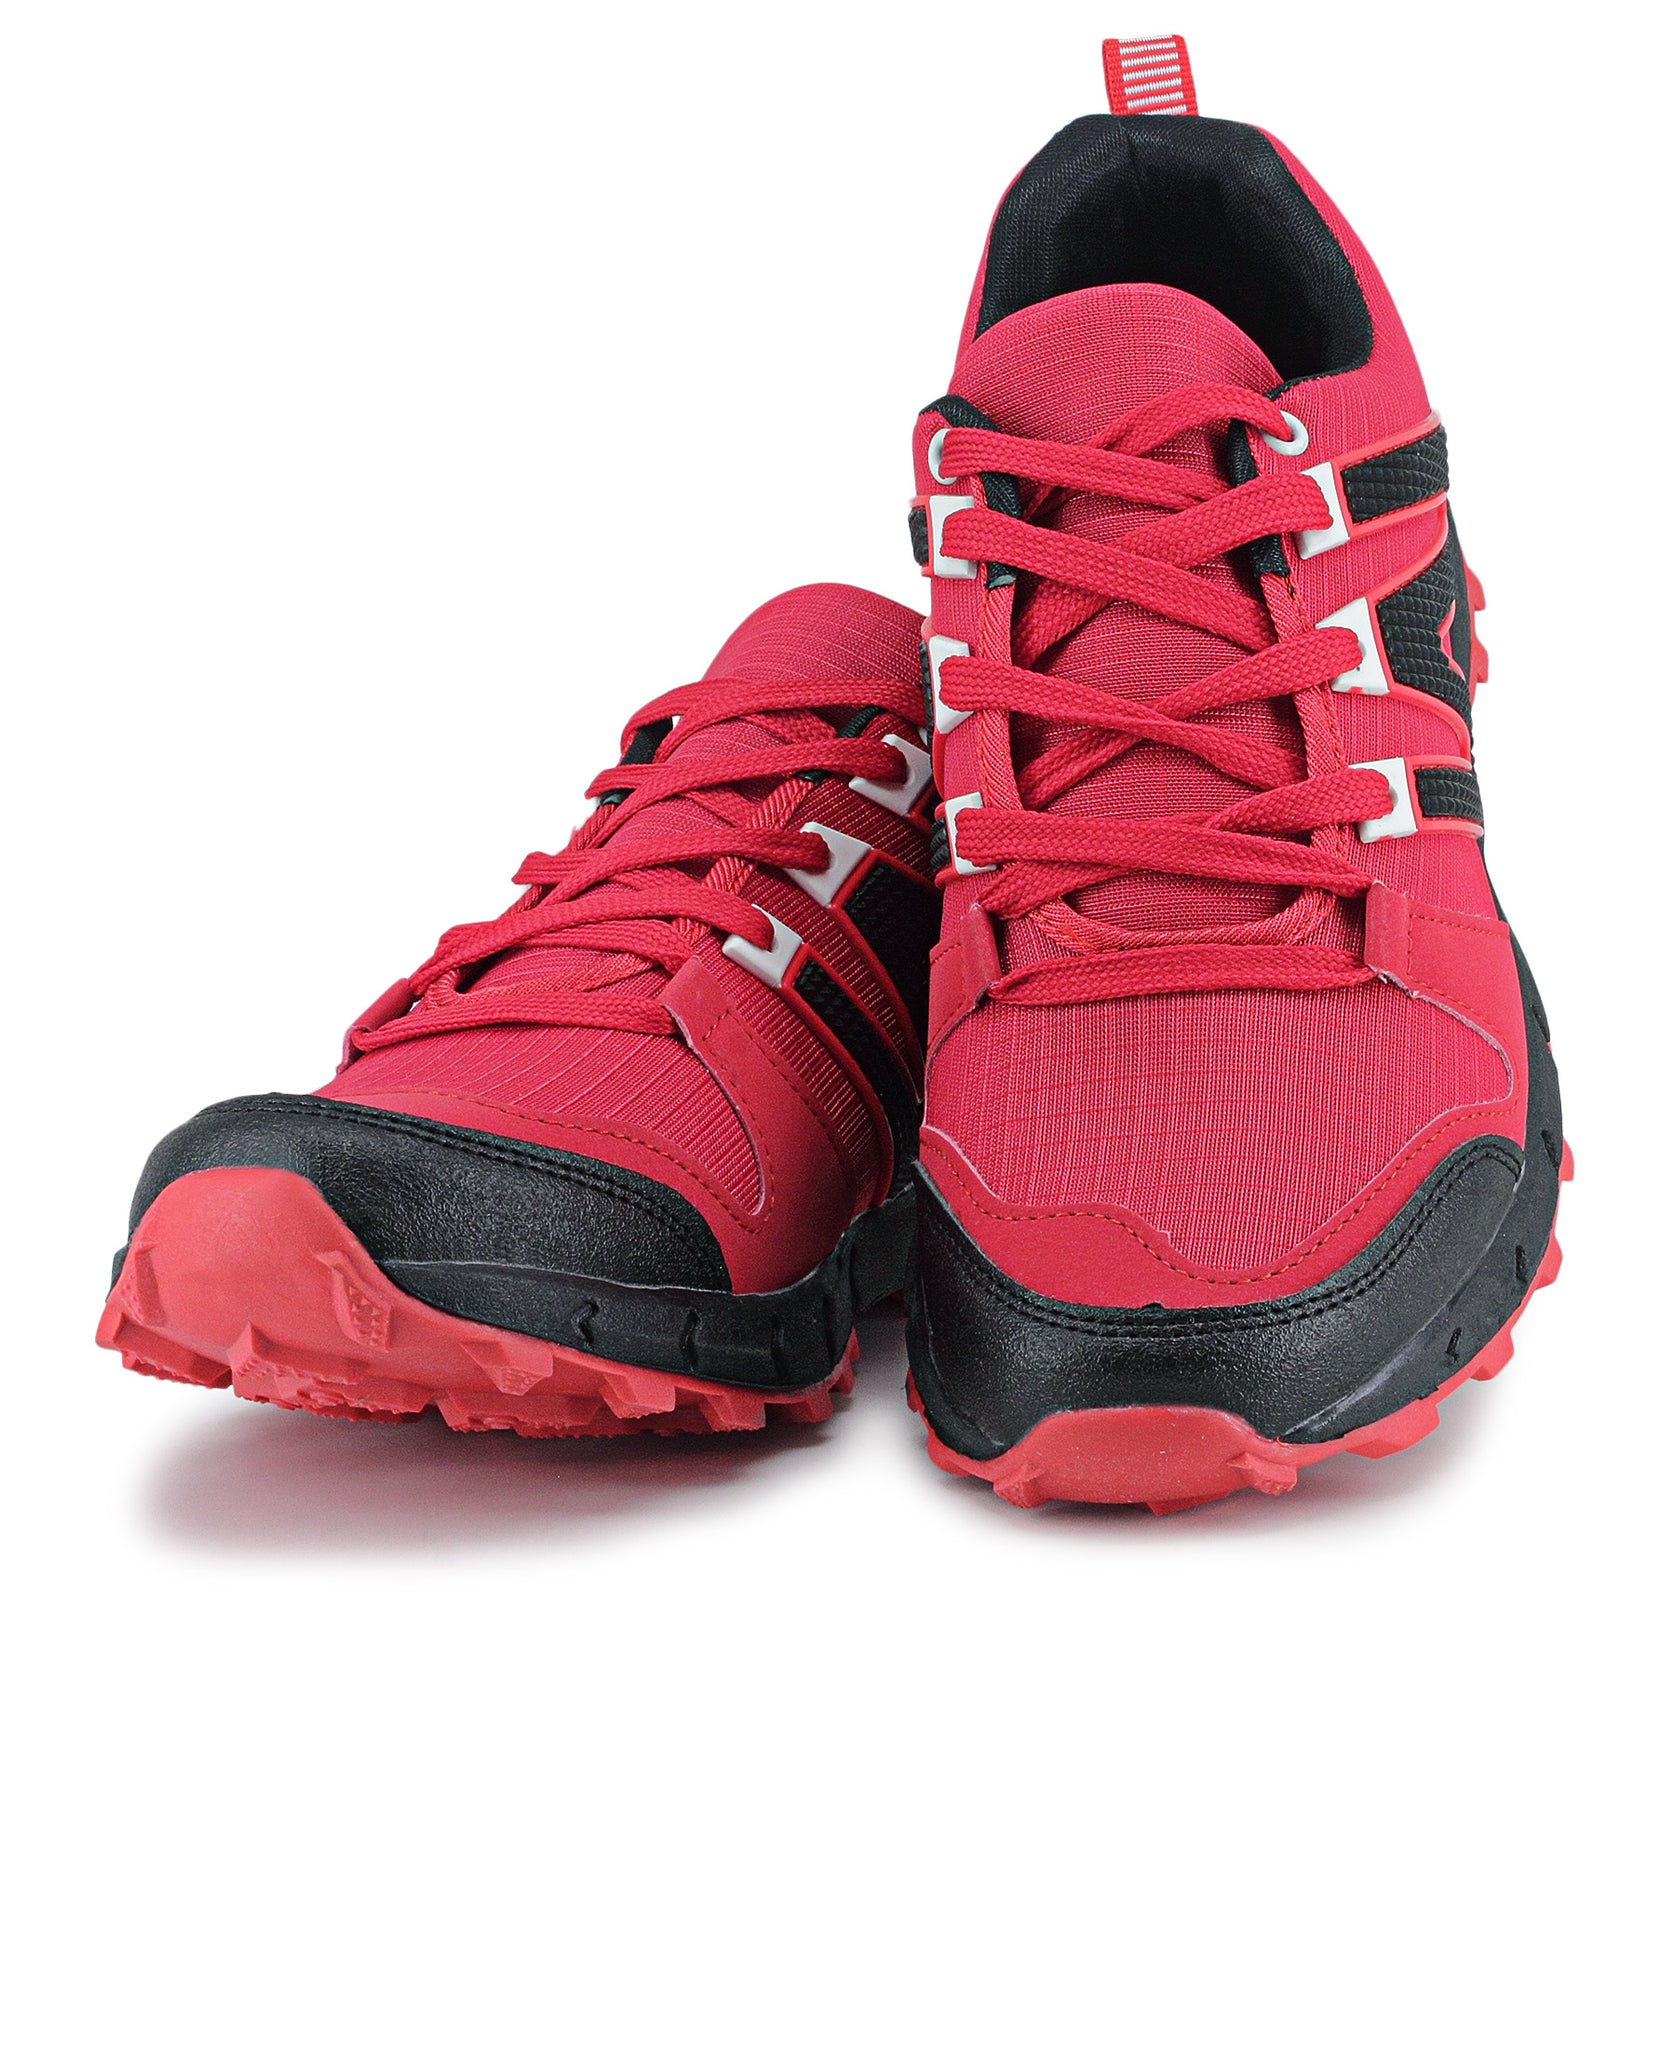 Men's Hiker - Red